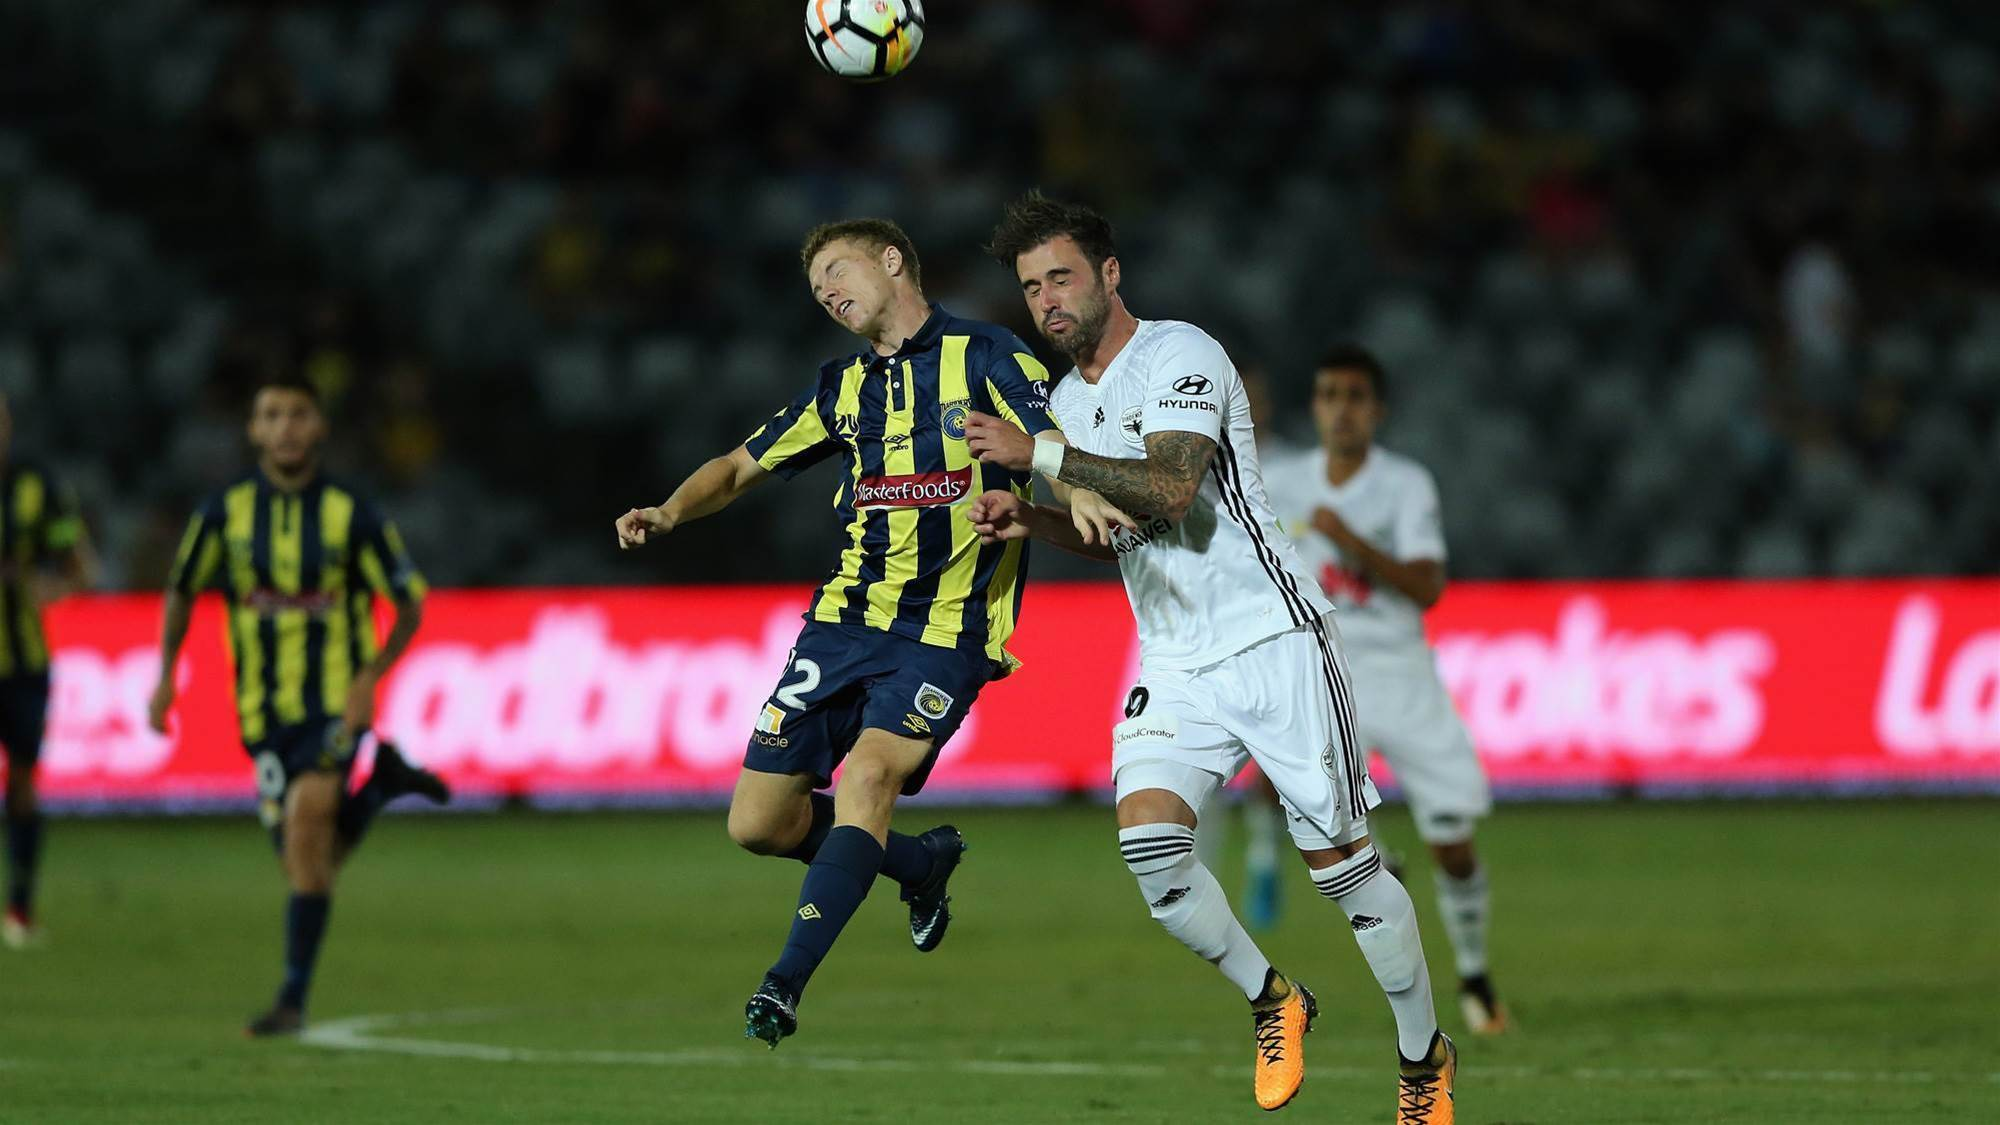 Mariners v Phoenix player ratings